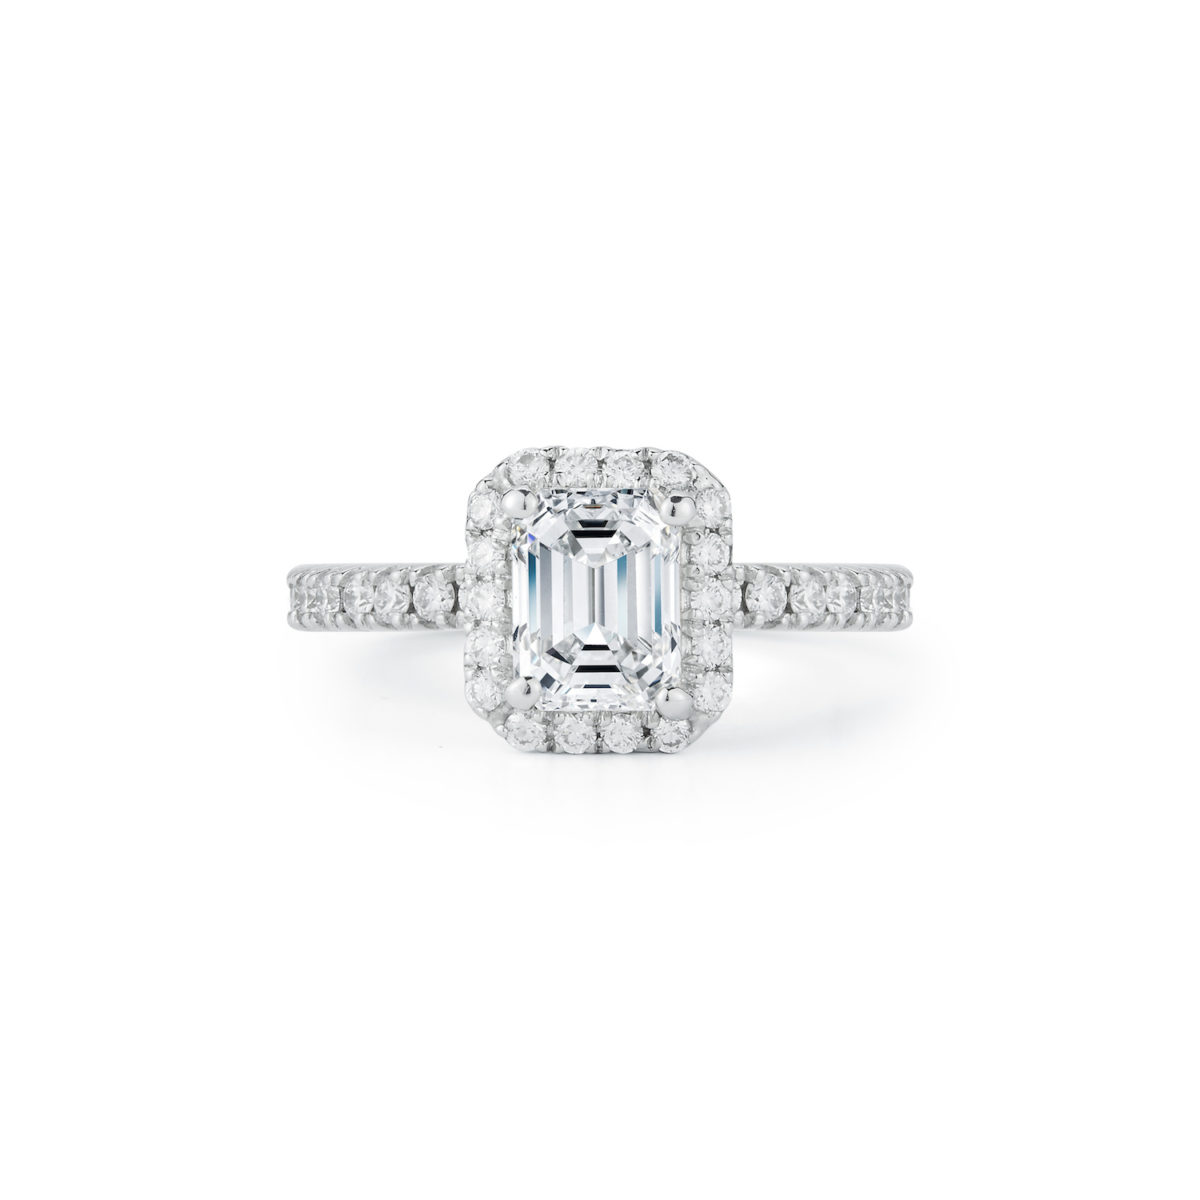 1.31 Carat Emerald-Cut Diamond Halo Engagement Ring